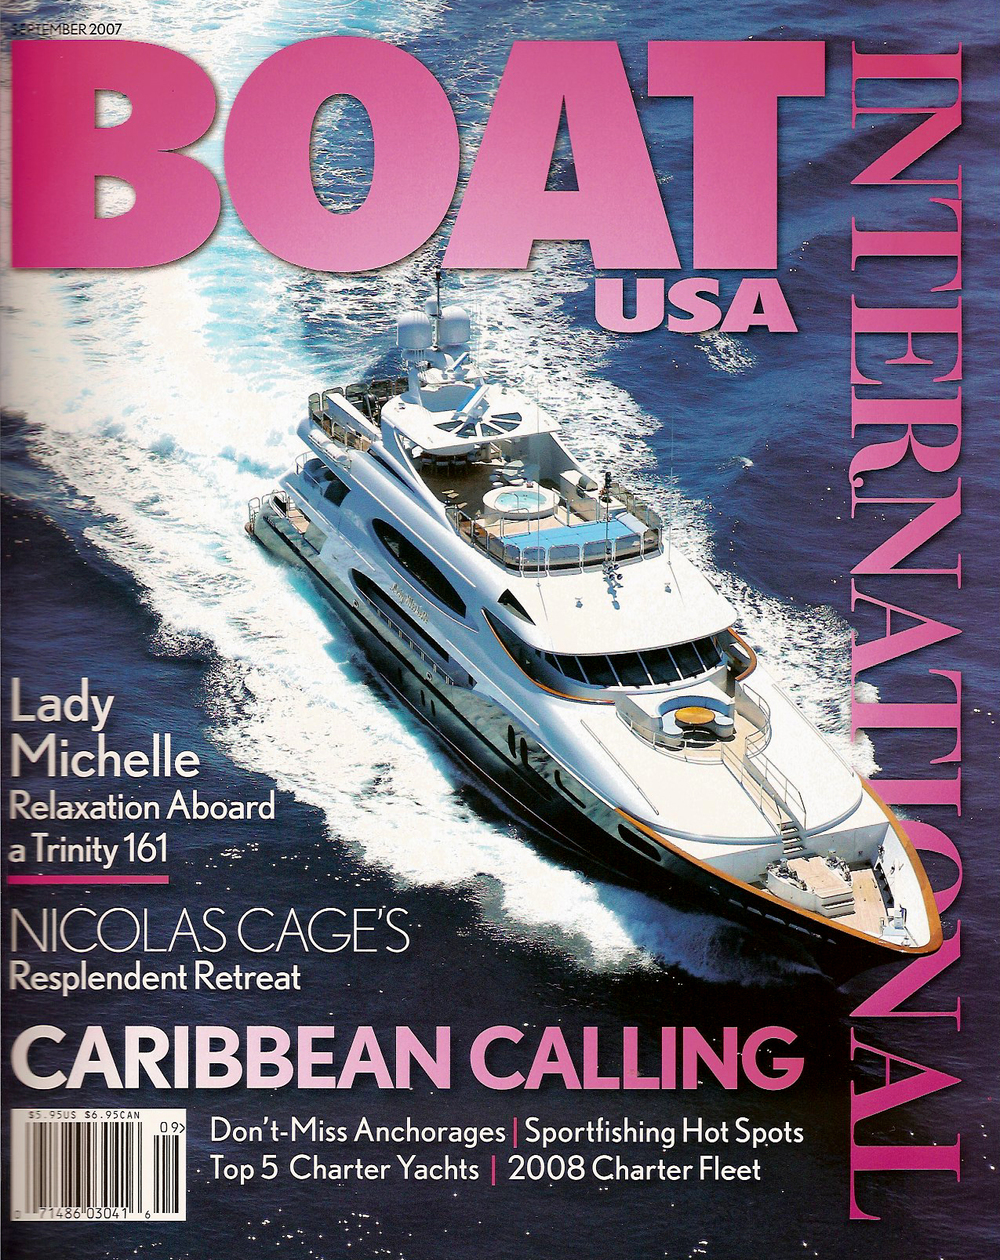 BoatUSA_Sep07cover.large.jpg